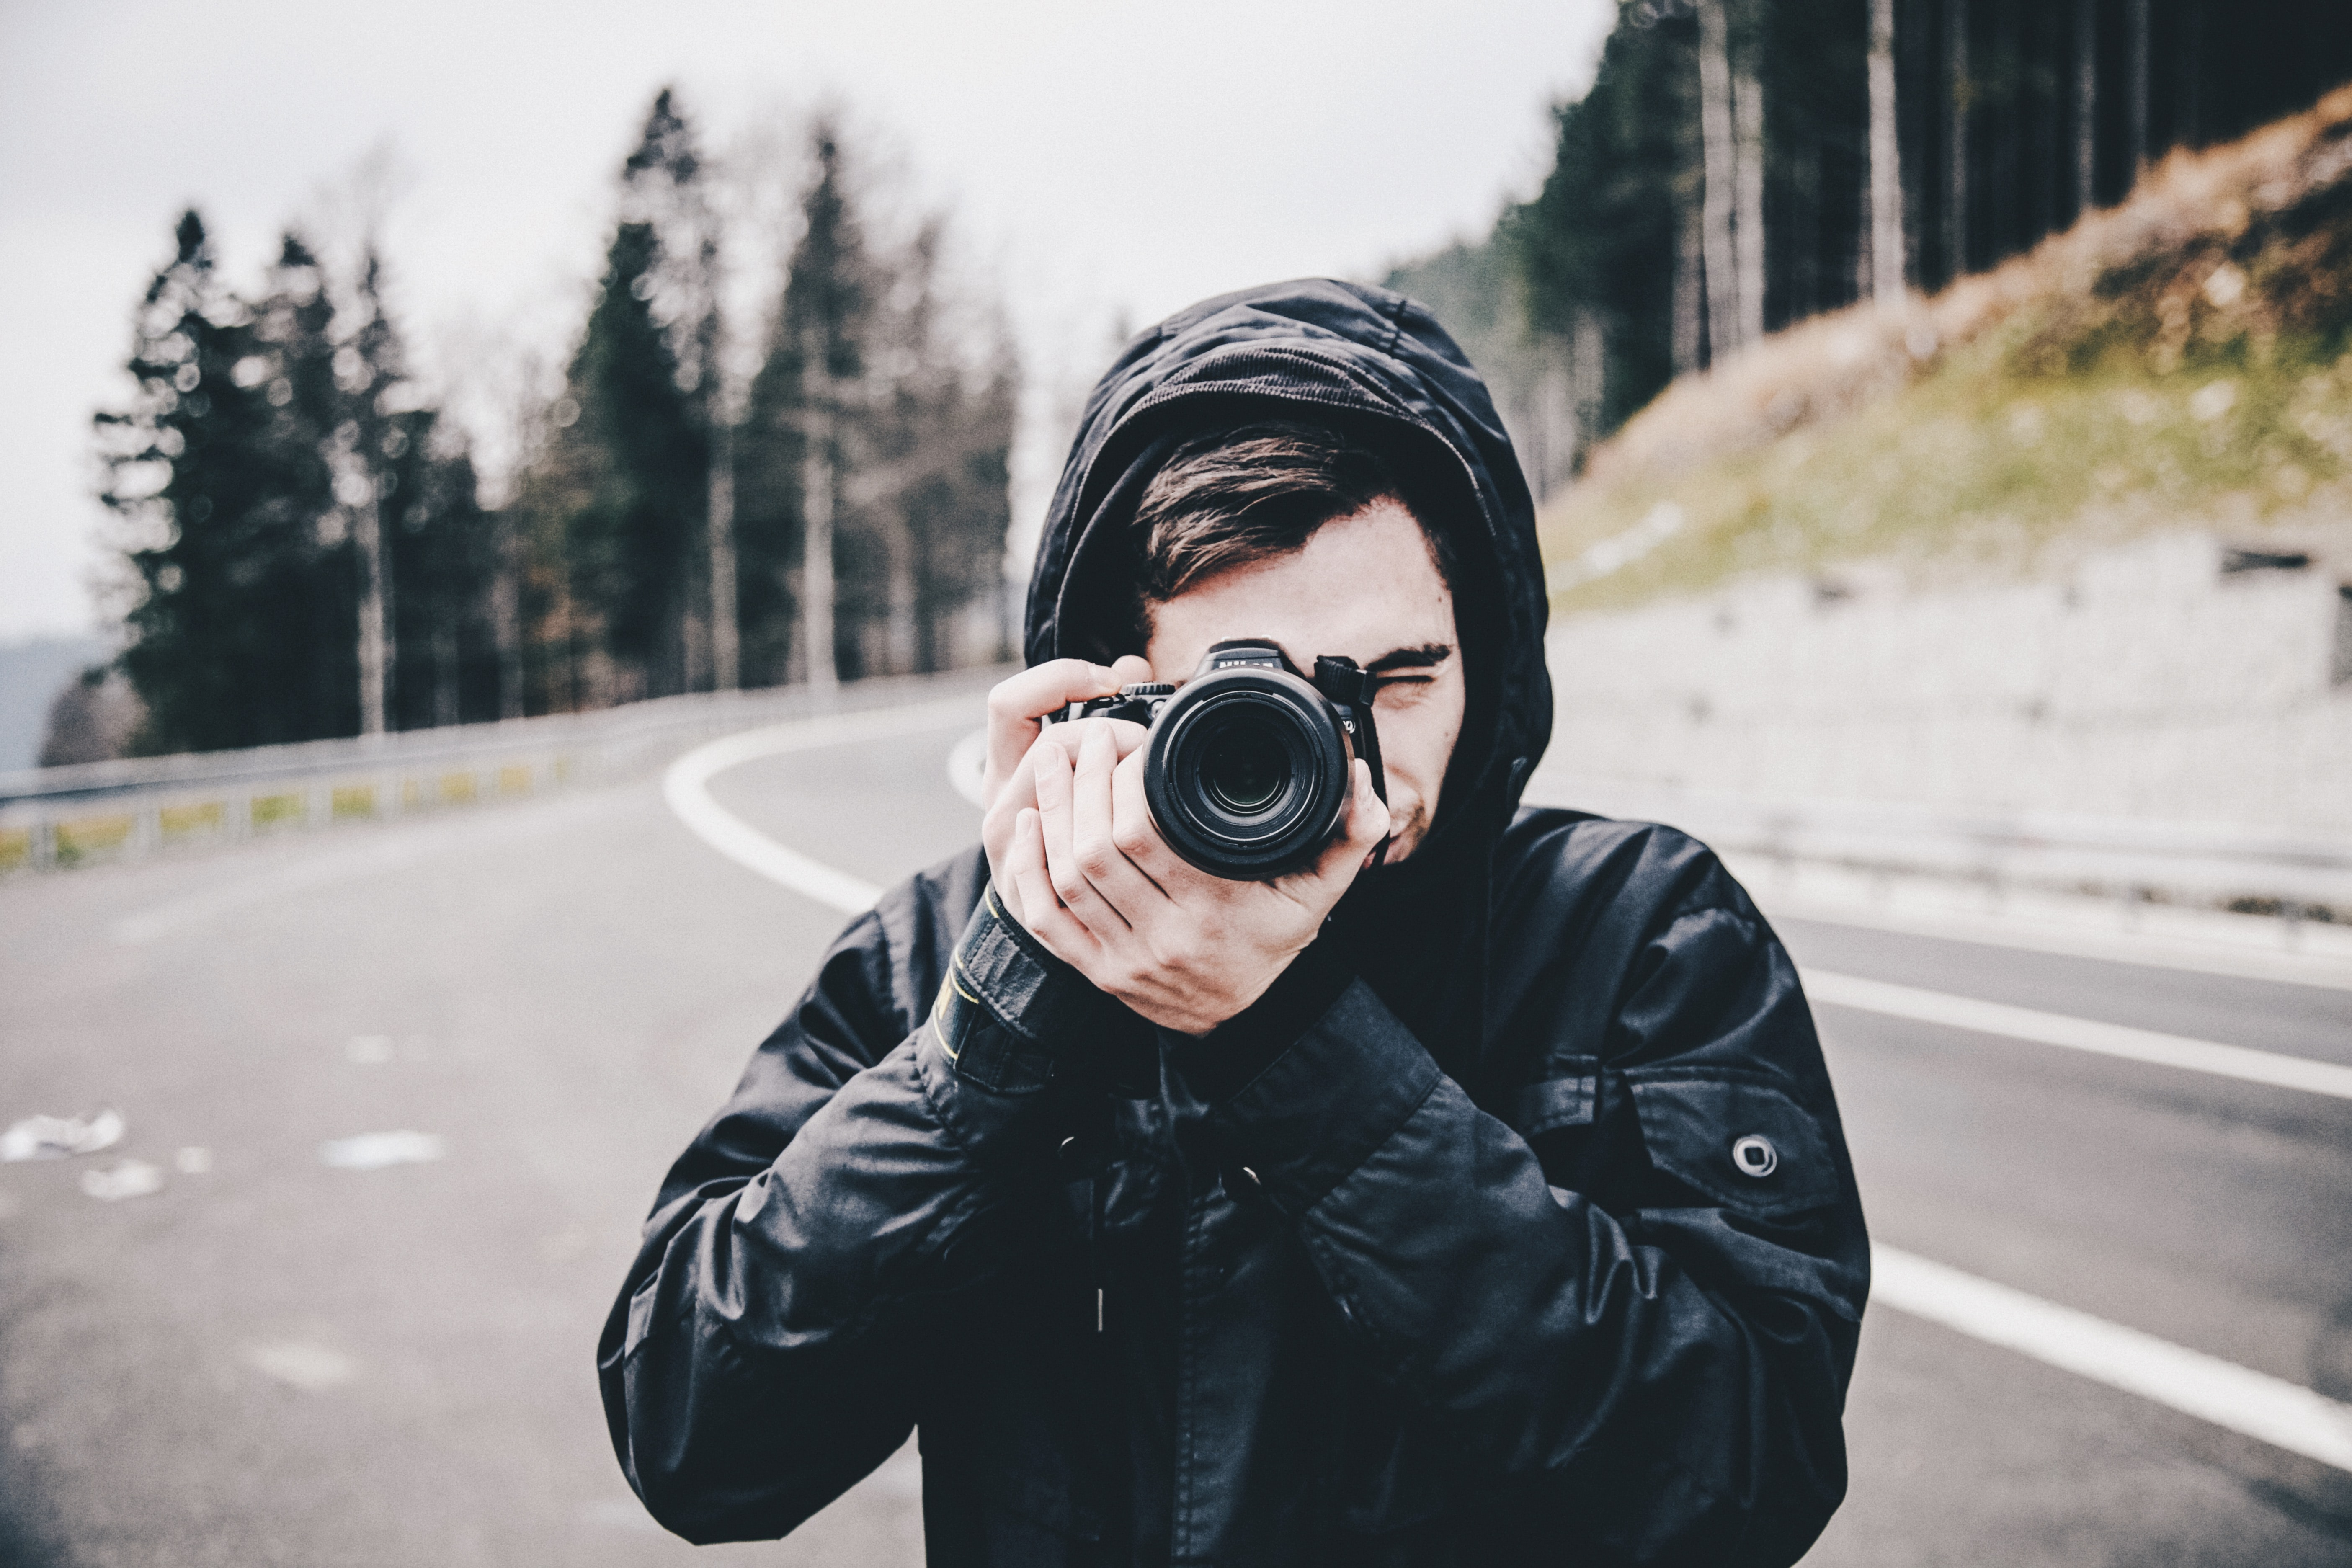 man in black jacket taking picture with DSLR camera on road